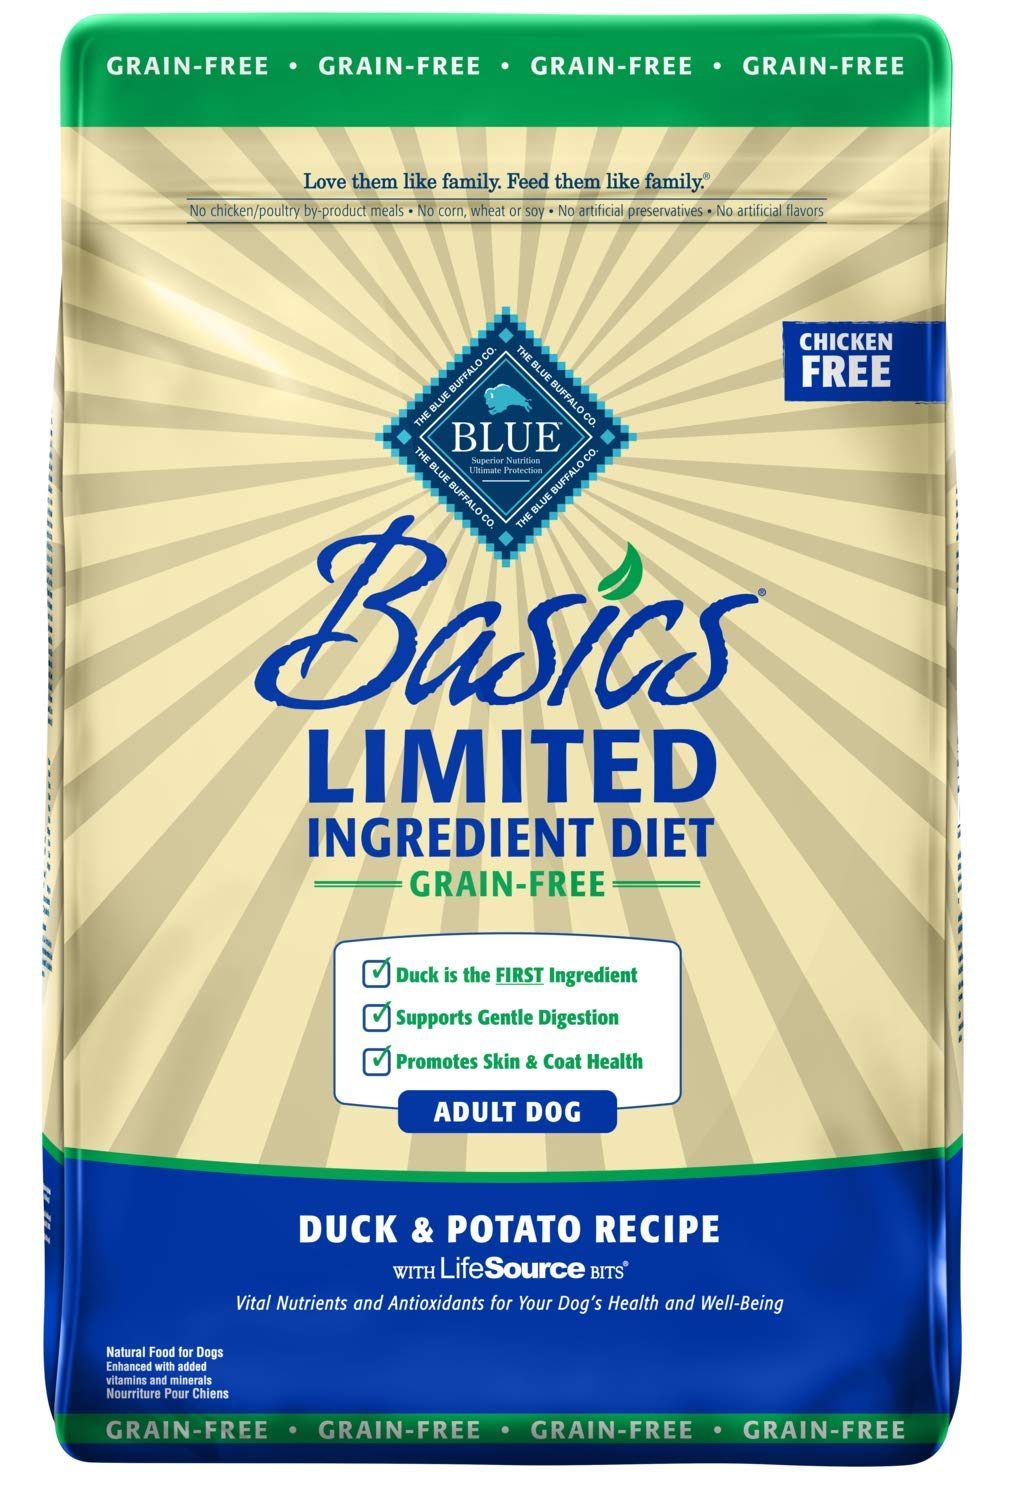 Blue Buffalo Limited Ingredient Grain Free Dog Food